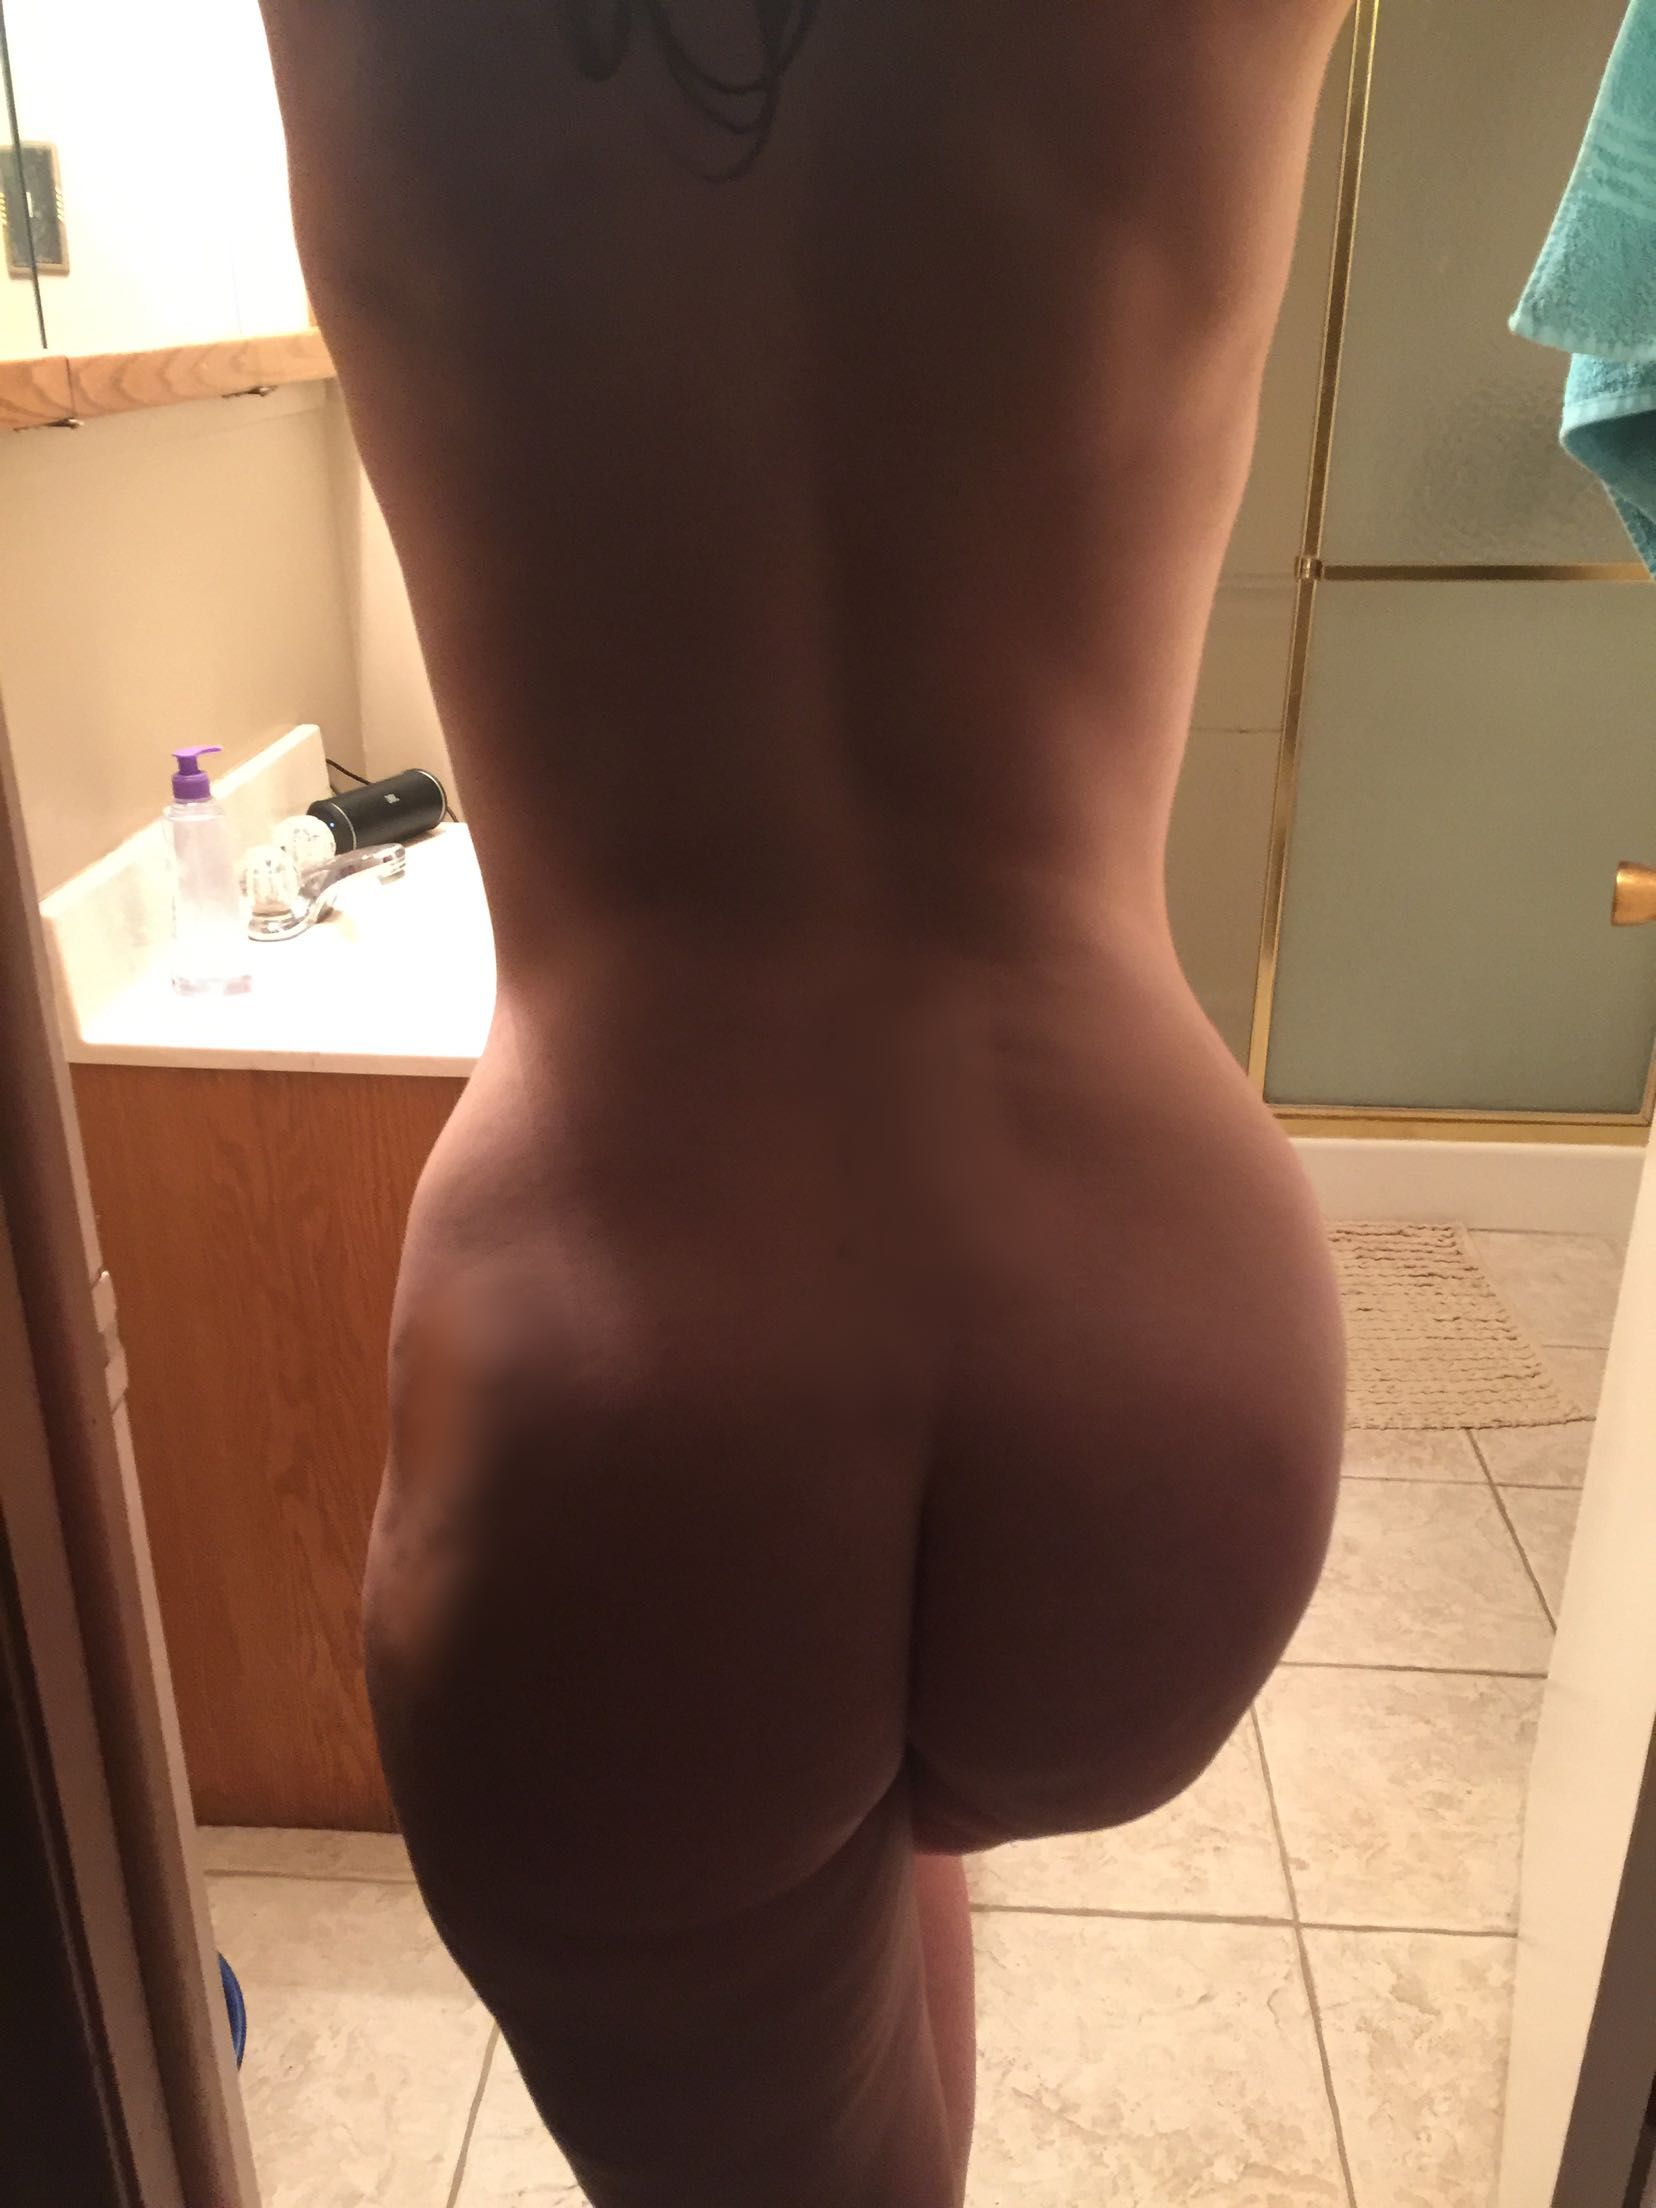 [Wife Porn Pics] I am a lucky man…my wife loves PMs